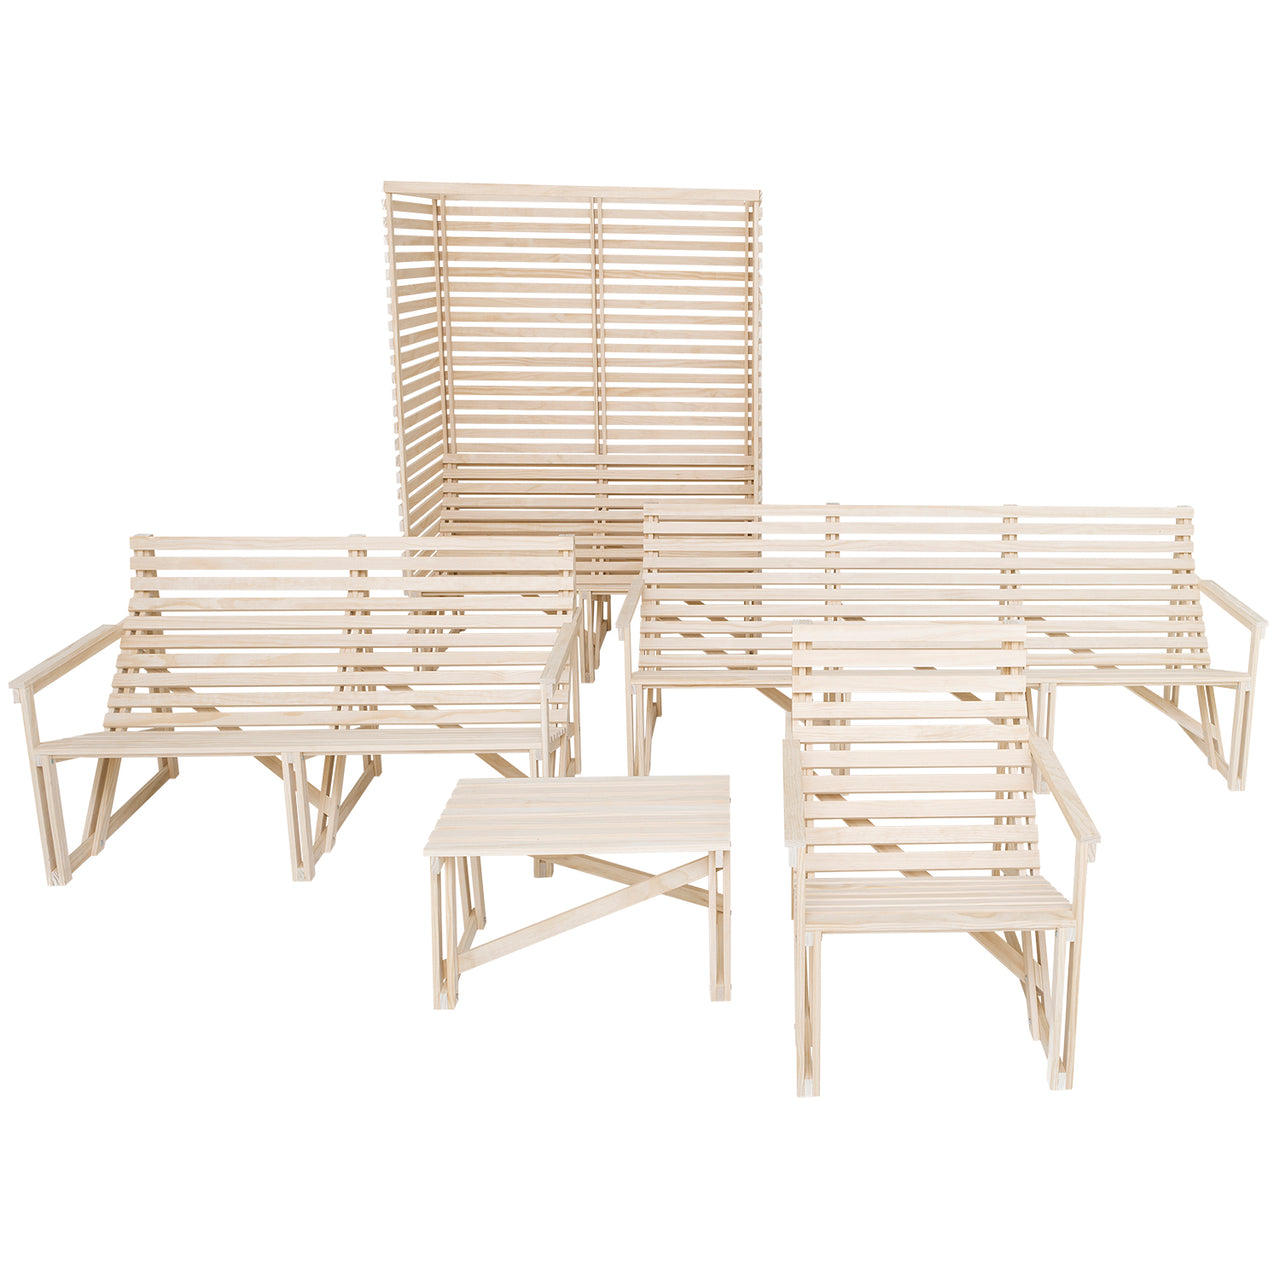 Patiobench 4-5 Seater